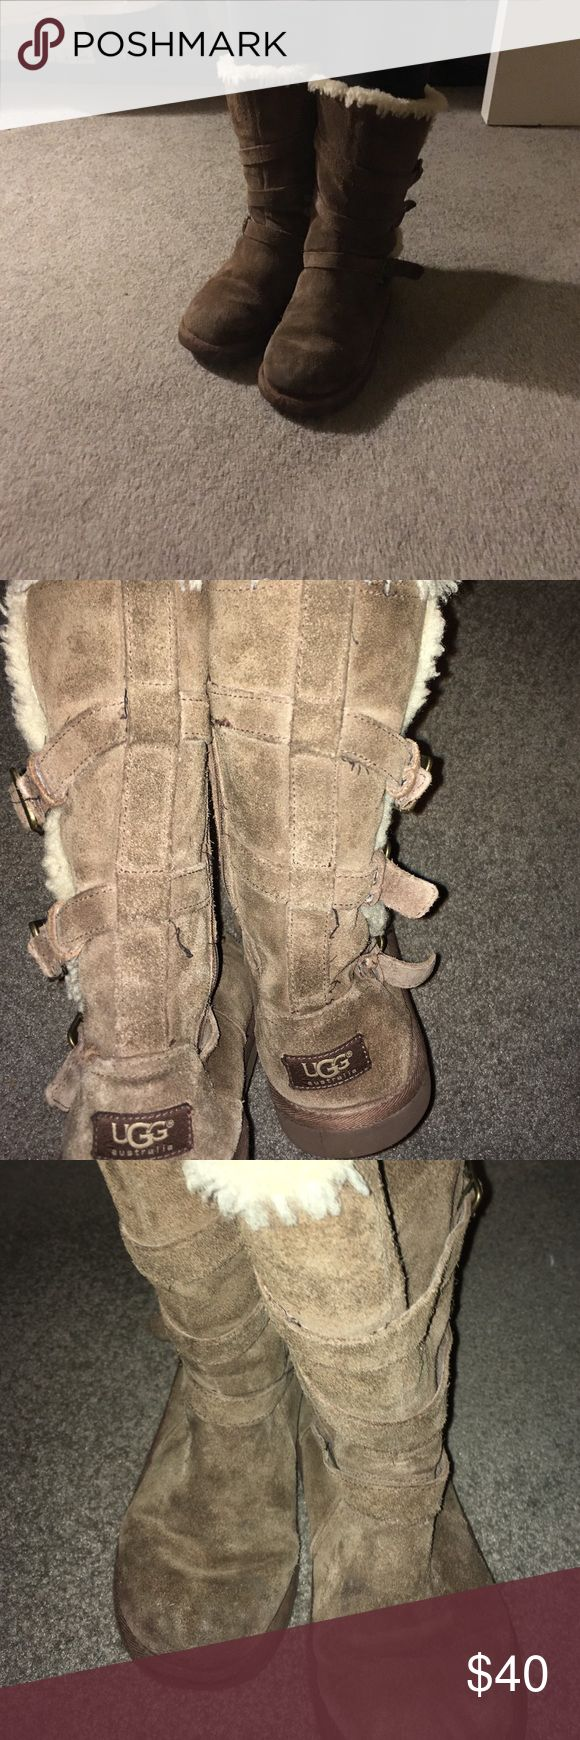 """Some good ol' Maddie Uggs! Size 4(girls) 6.5(W) Maggie Style Girls Uggs, marked Size 4. It fits me kind of big, and I Wear a 6- 6.5. So I would say fits a 7- 71/2 very well.  These are Taupe Suede and 3 buckles on outer boot with a zipper on the inside part  boot.  These are authentic and are great for keeping toes warm and dry.  The sole is approximately 10 1/4"""". Any questions please ask. These are broken in and that is reflected in the price. The fur lining on the inside of the sole is…"""